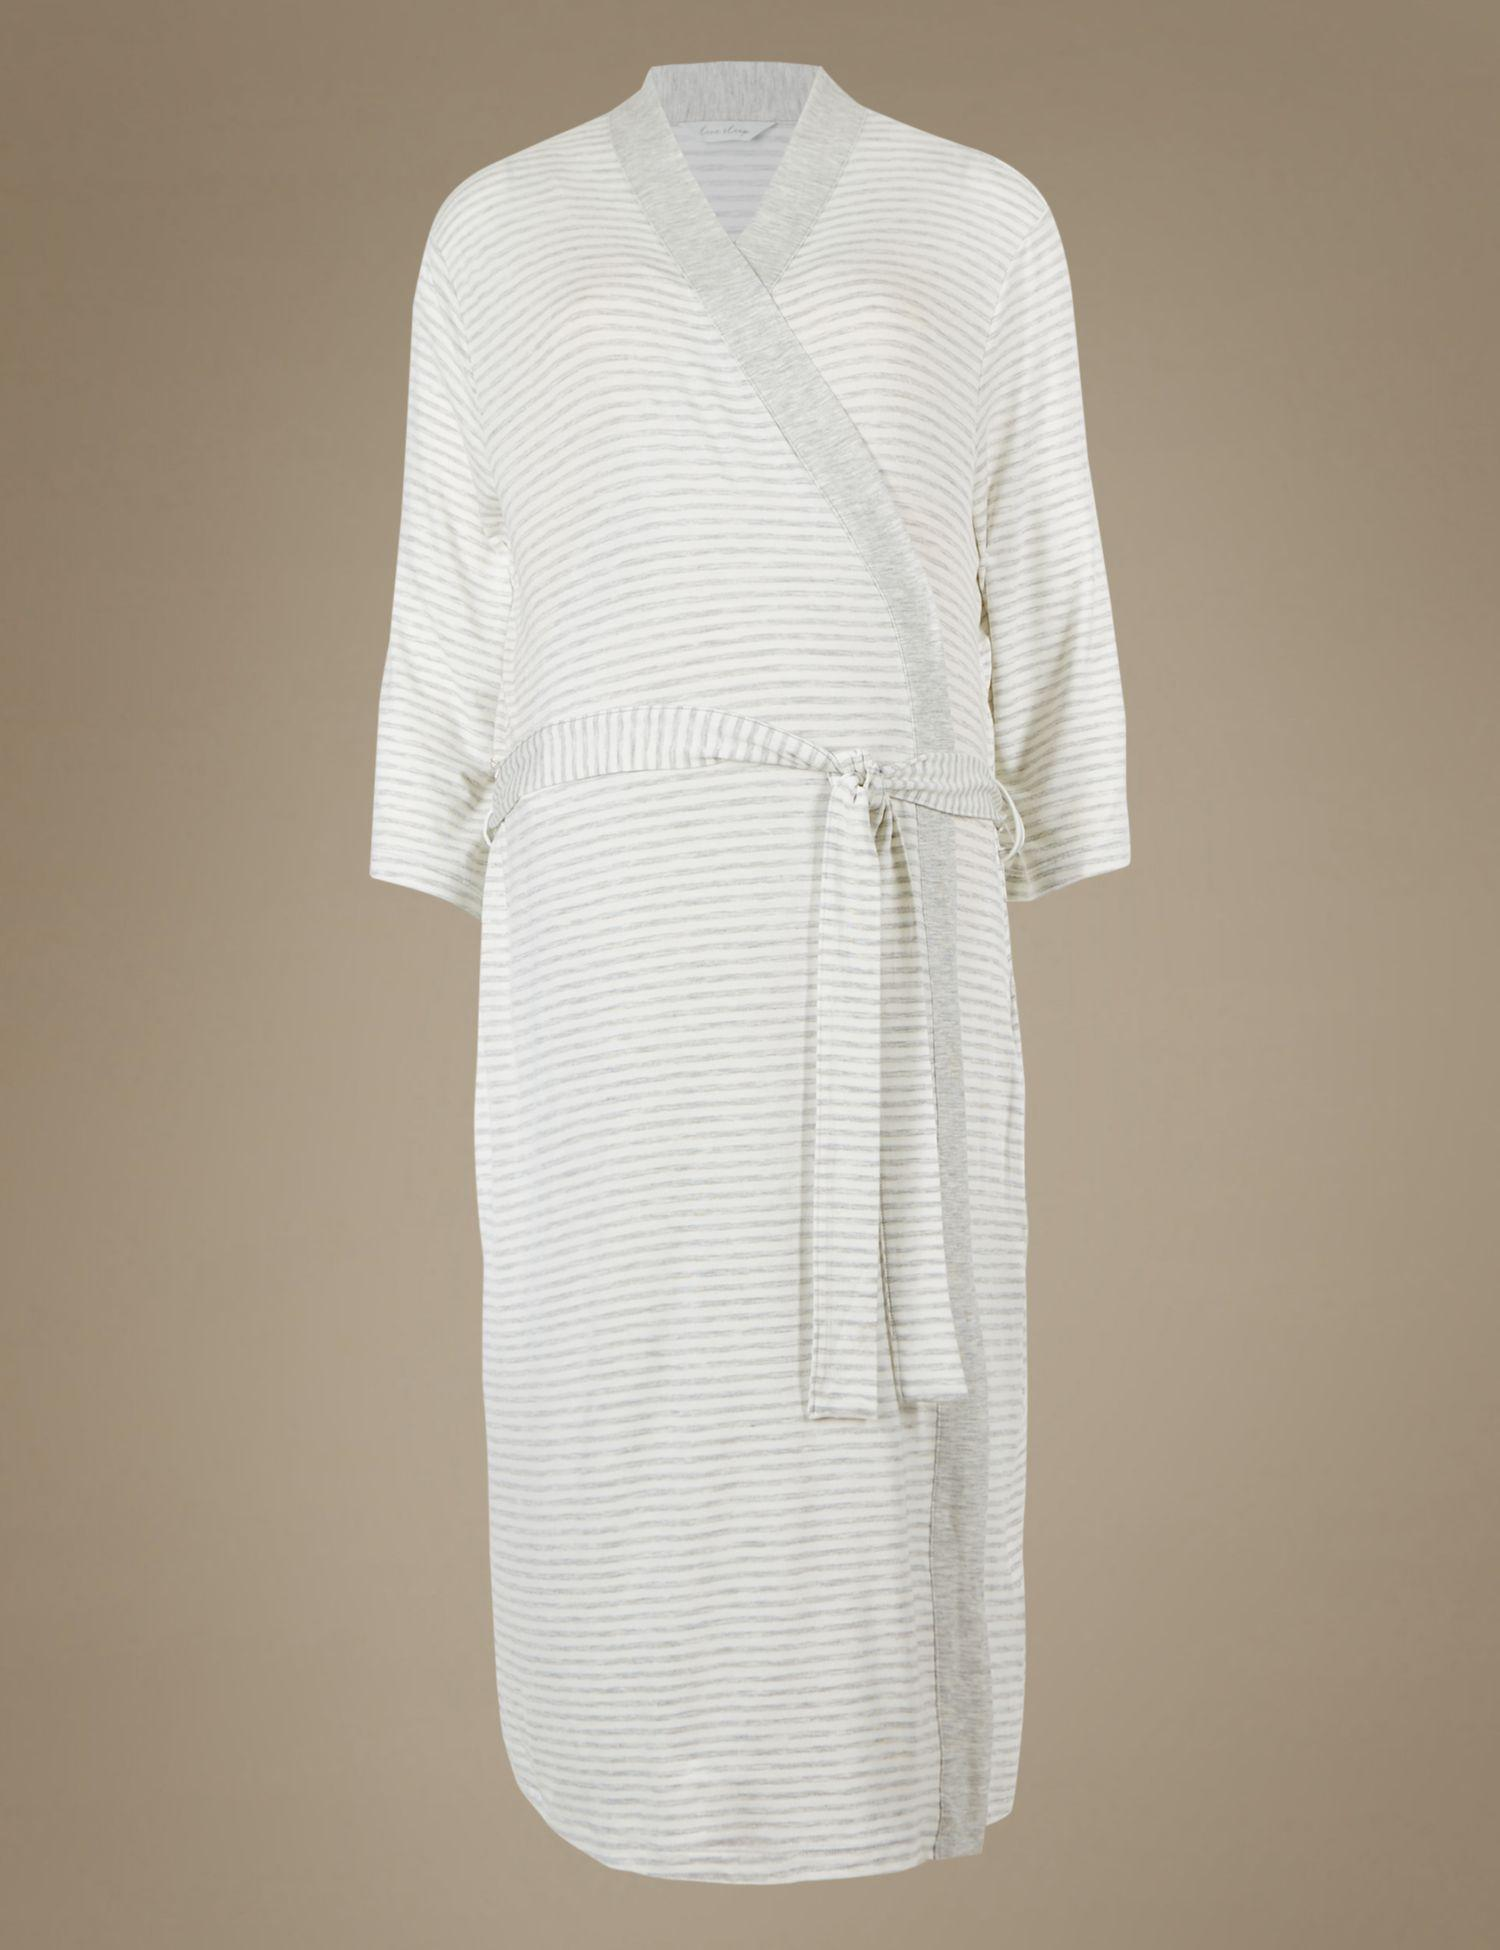 996c3020d8 Marks   Spencer Maternity Wrap Dressing Gown in Gray - Lyst